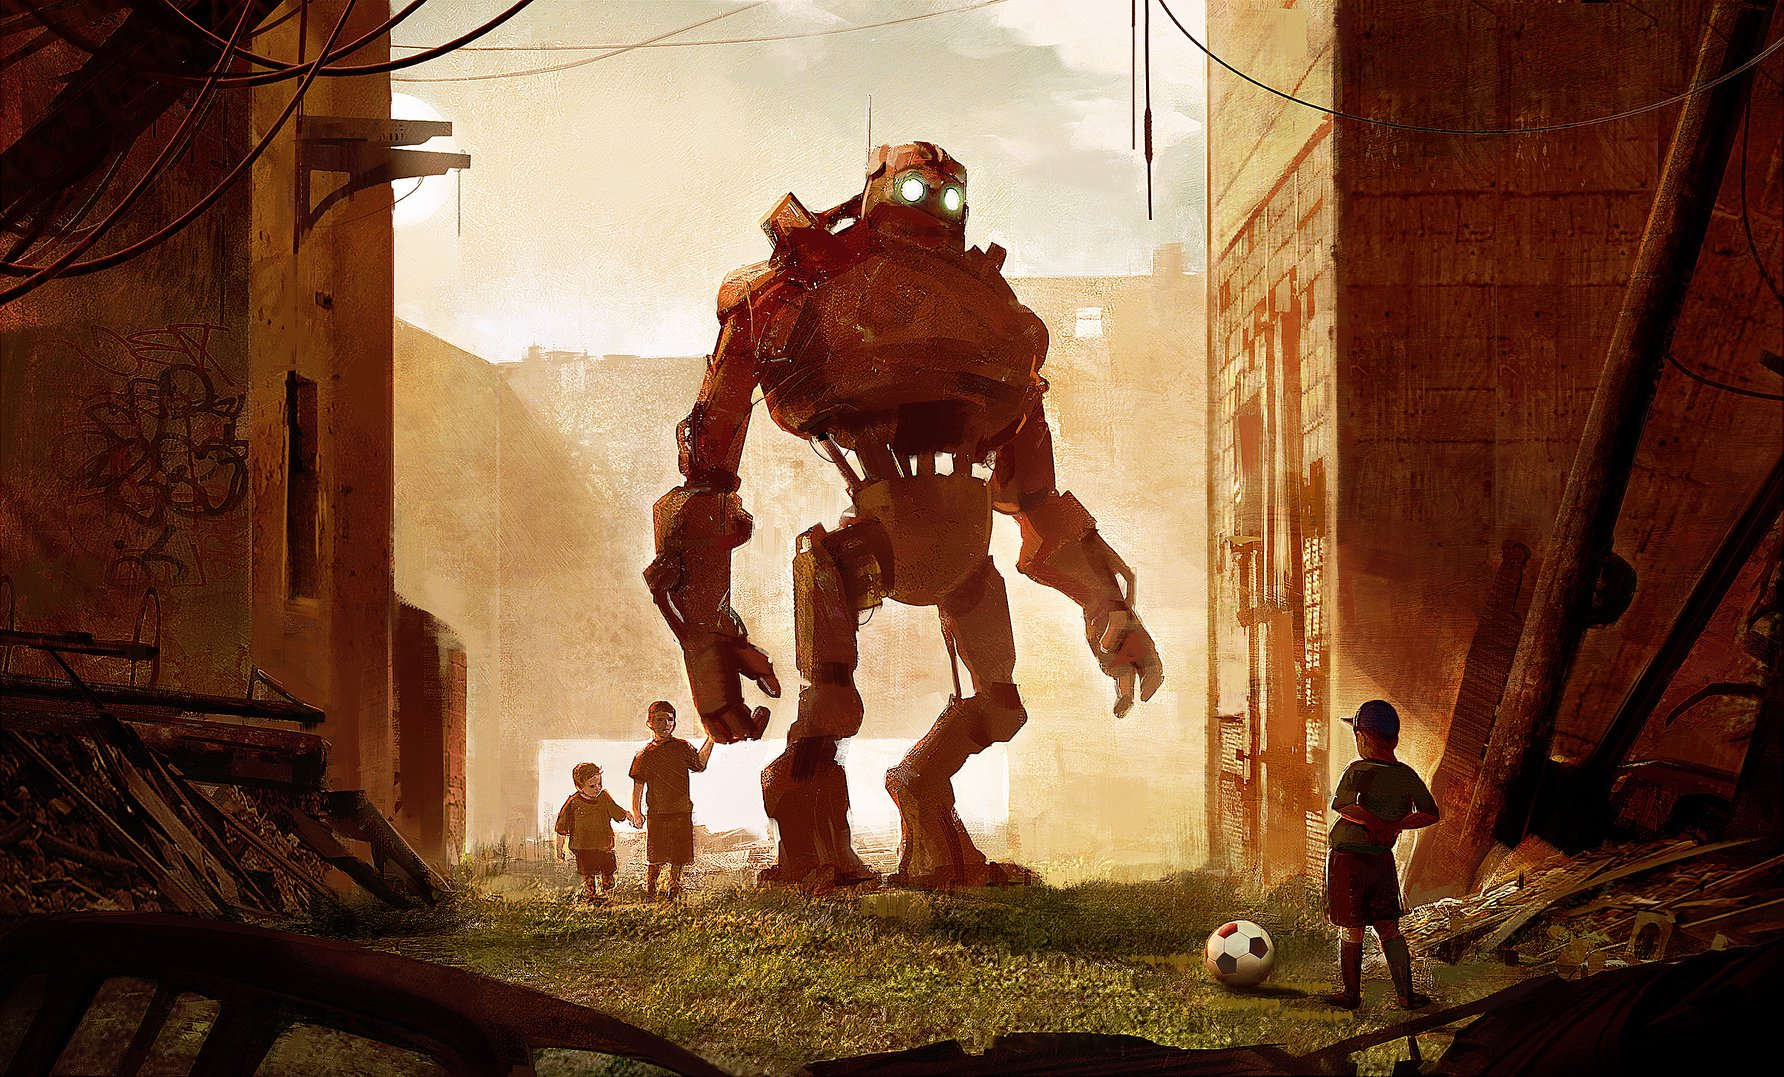 Digital illustration of giant robot in a post-apocalyptic world, with children playing football / soccer.